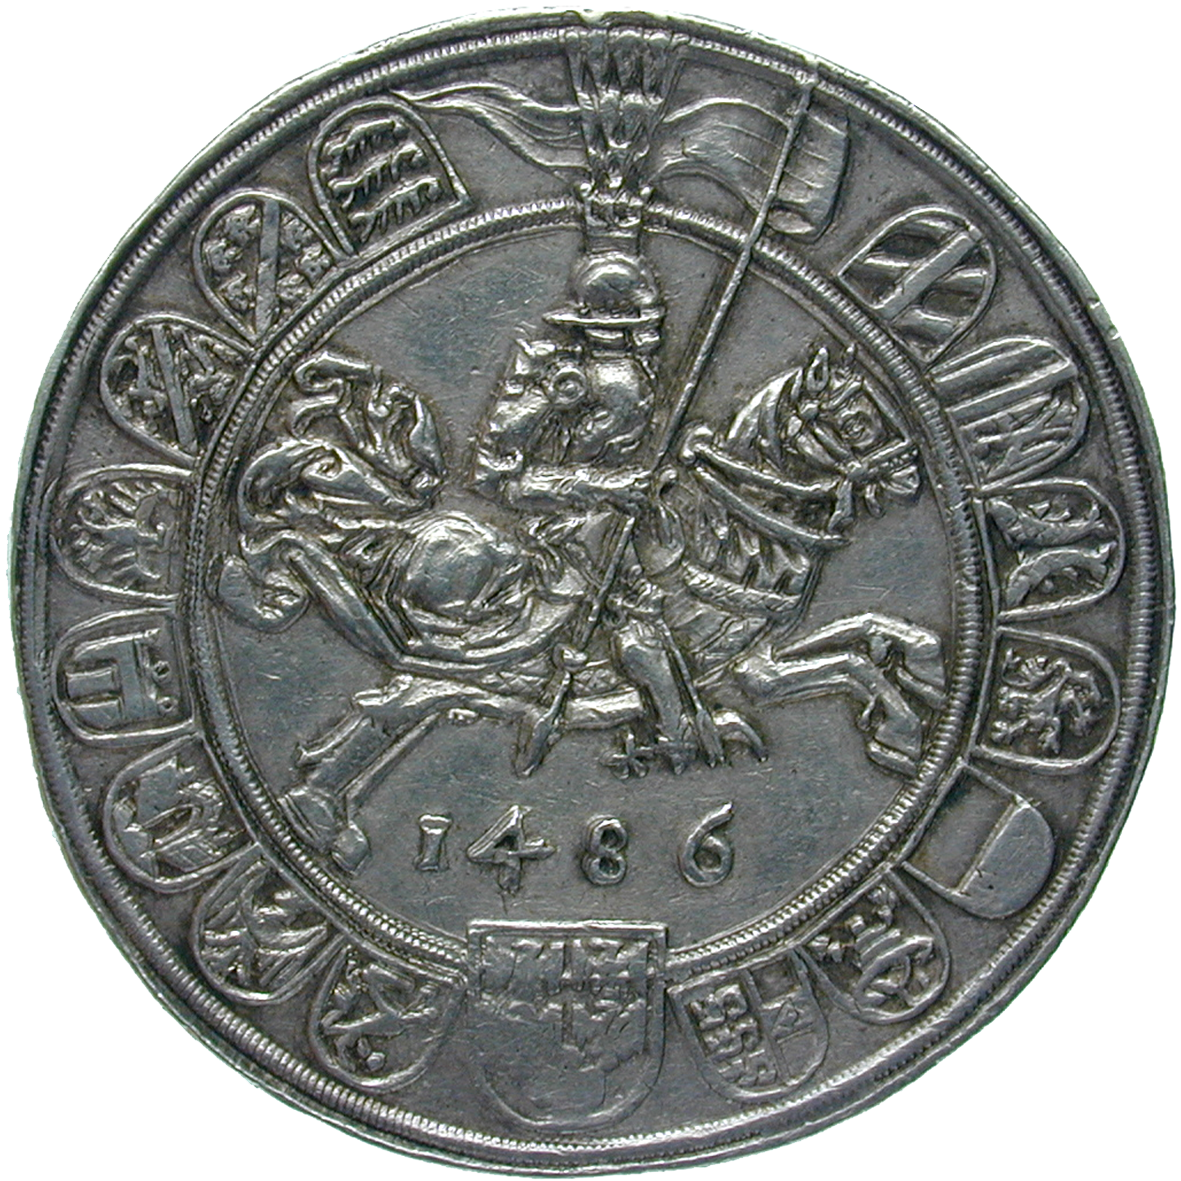 Holy Roman Empire, Archduchy of Austria, County of Tyrol, Sigismund, Guldiner 1486 (reverse)